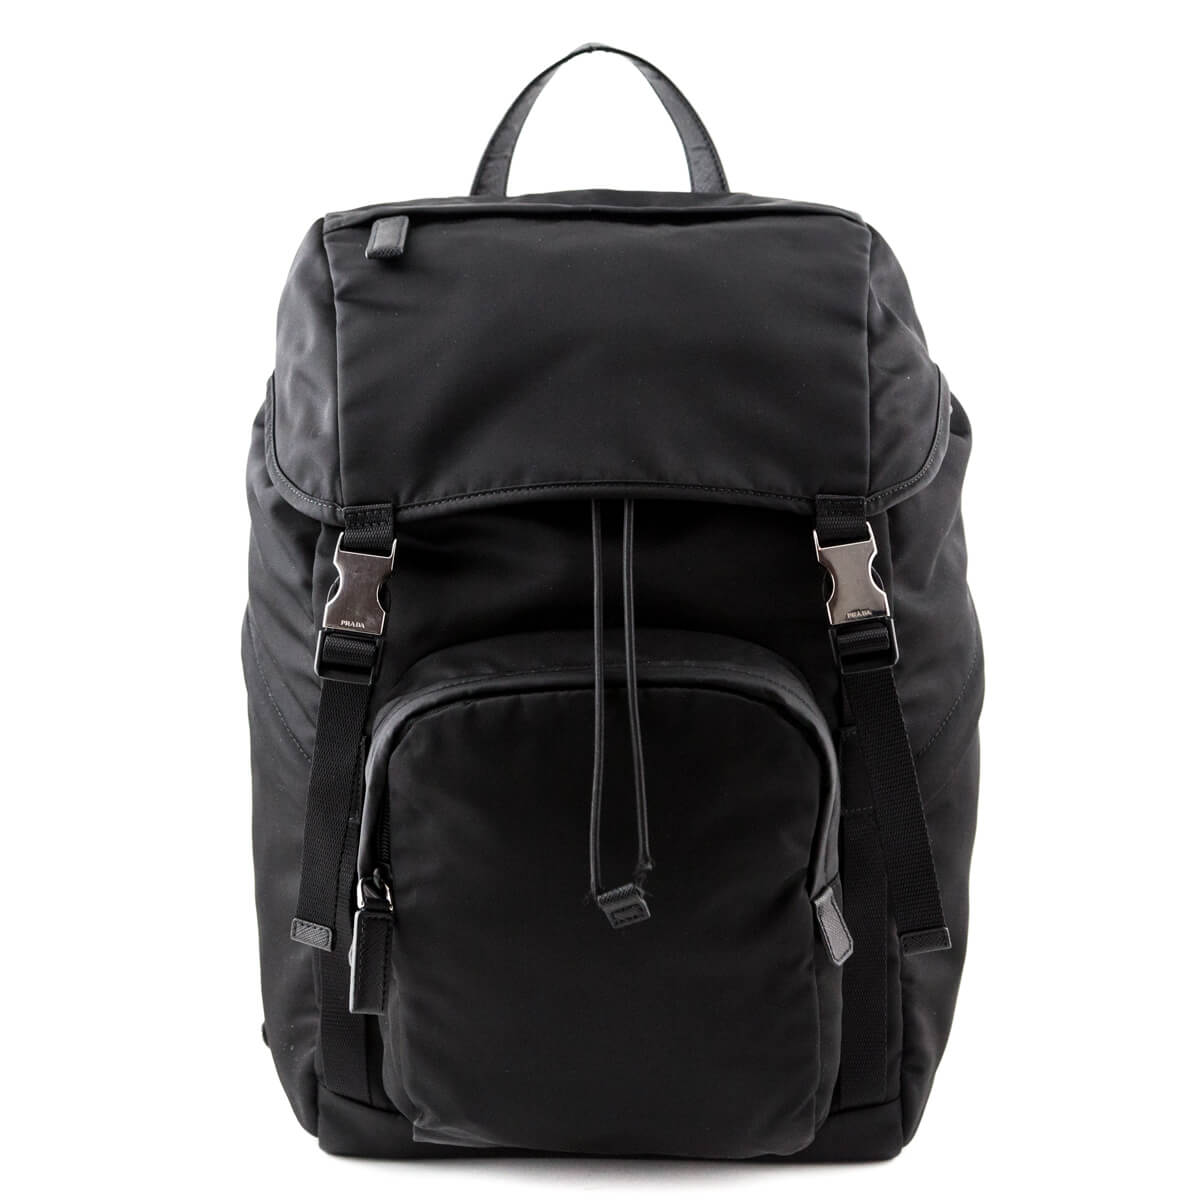 92fd23ee3ec0 Prada Men s Technical Fabric Double-Buckle Backpack - LOVE that BAG -  Preowned Authentic Designer ...